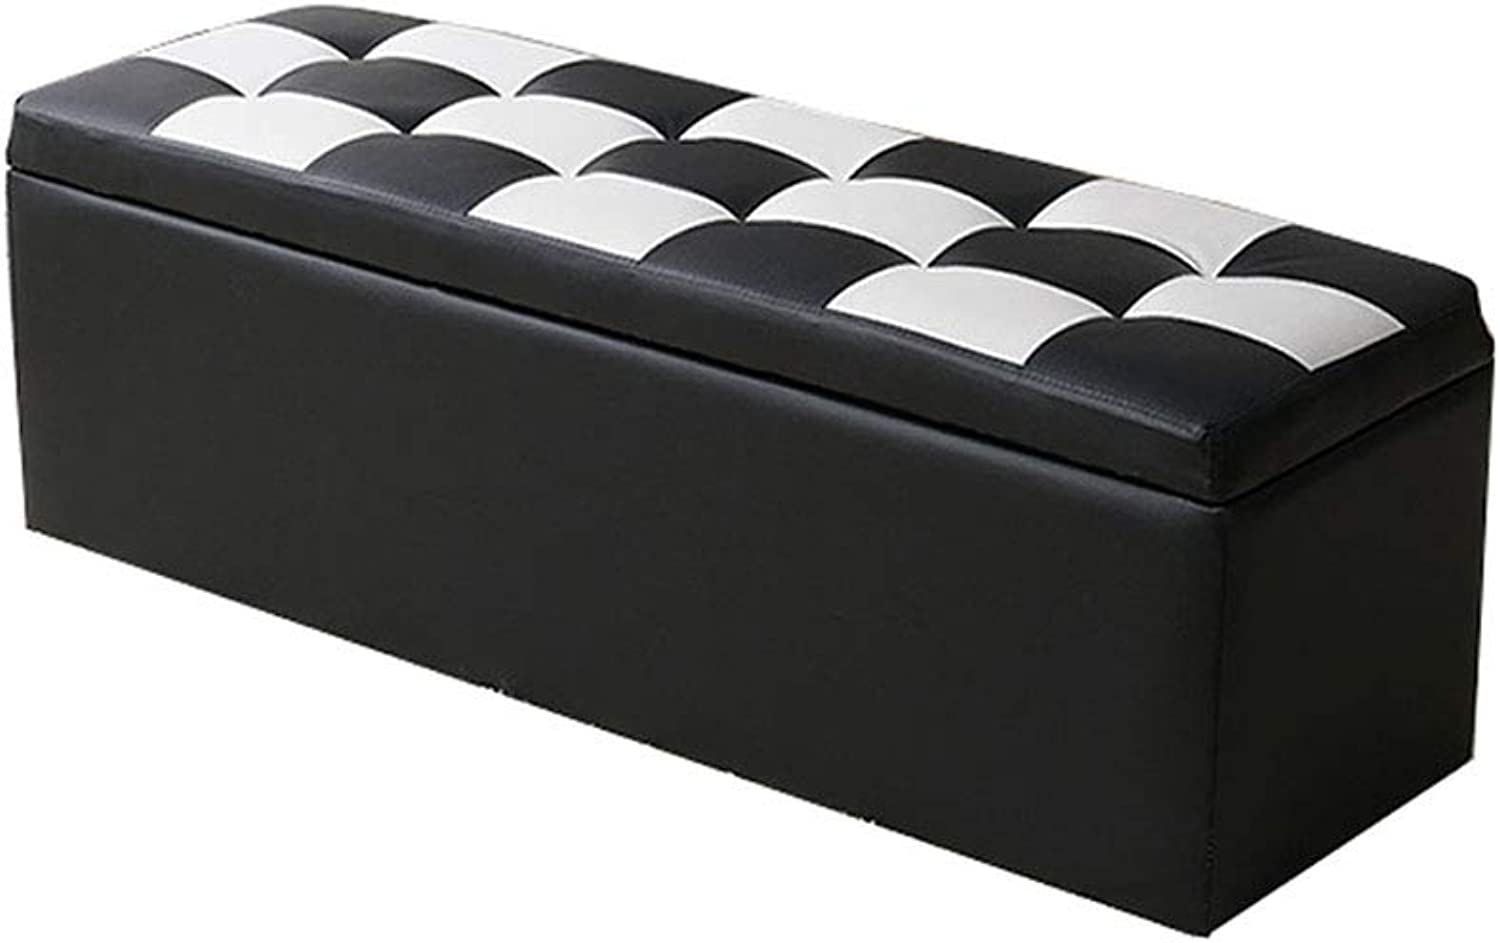 Solid Wood Rectangular Sofa Bench, Living Room, shoes Bench, Storage Stool, Storage Dressing Room, Fitting Room Stool, Multi-color, Multi-Size (color   Black and White, Size   40  40  40cm)